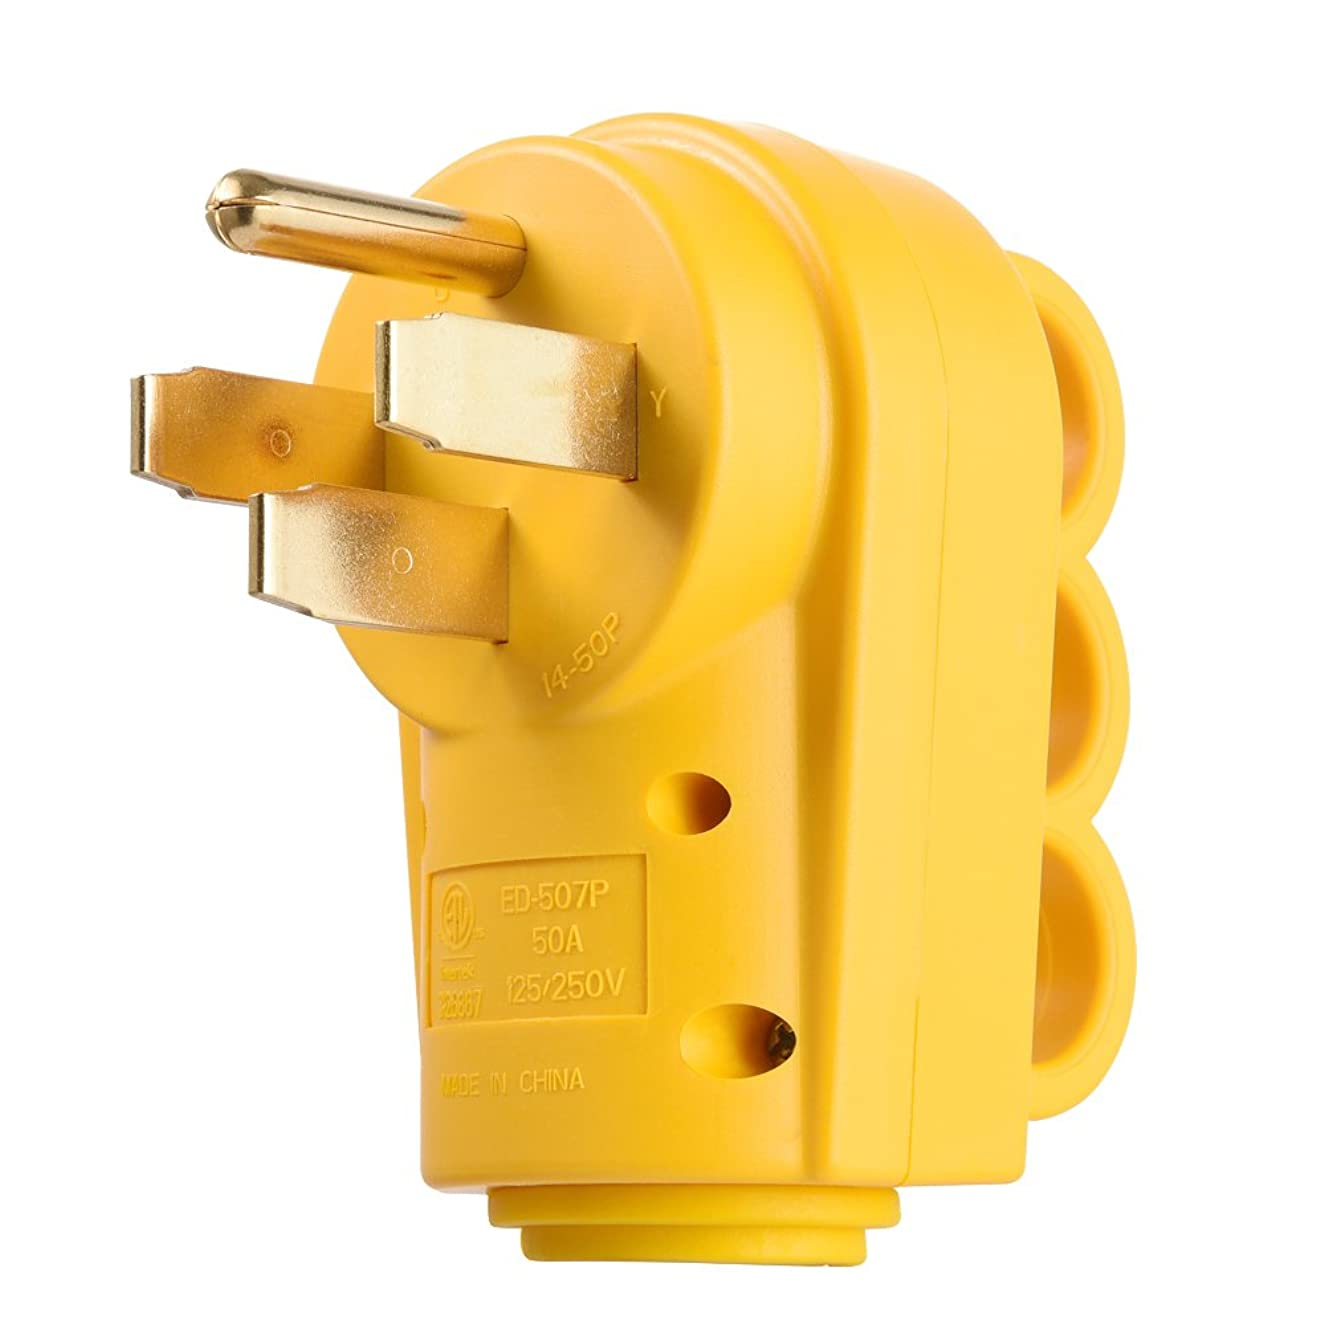 MICTUNING 125/250V 50Amp Heavy Duty RV Replacement Male Plug with Ergonomic Grip Handle, Yellow